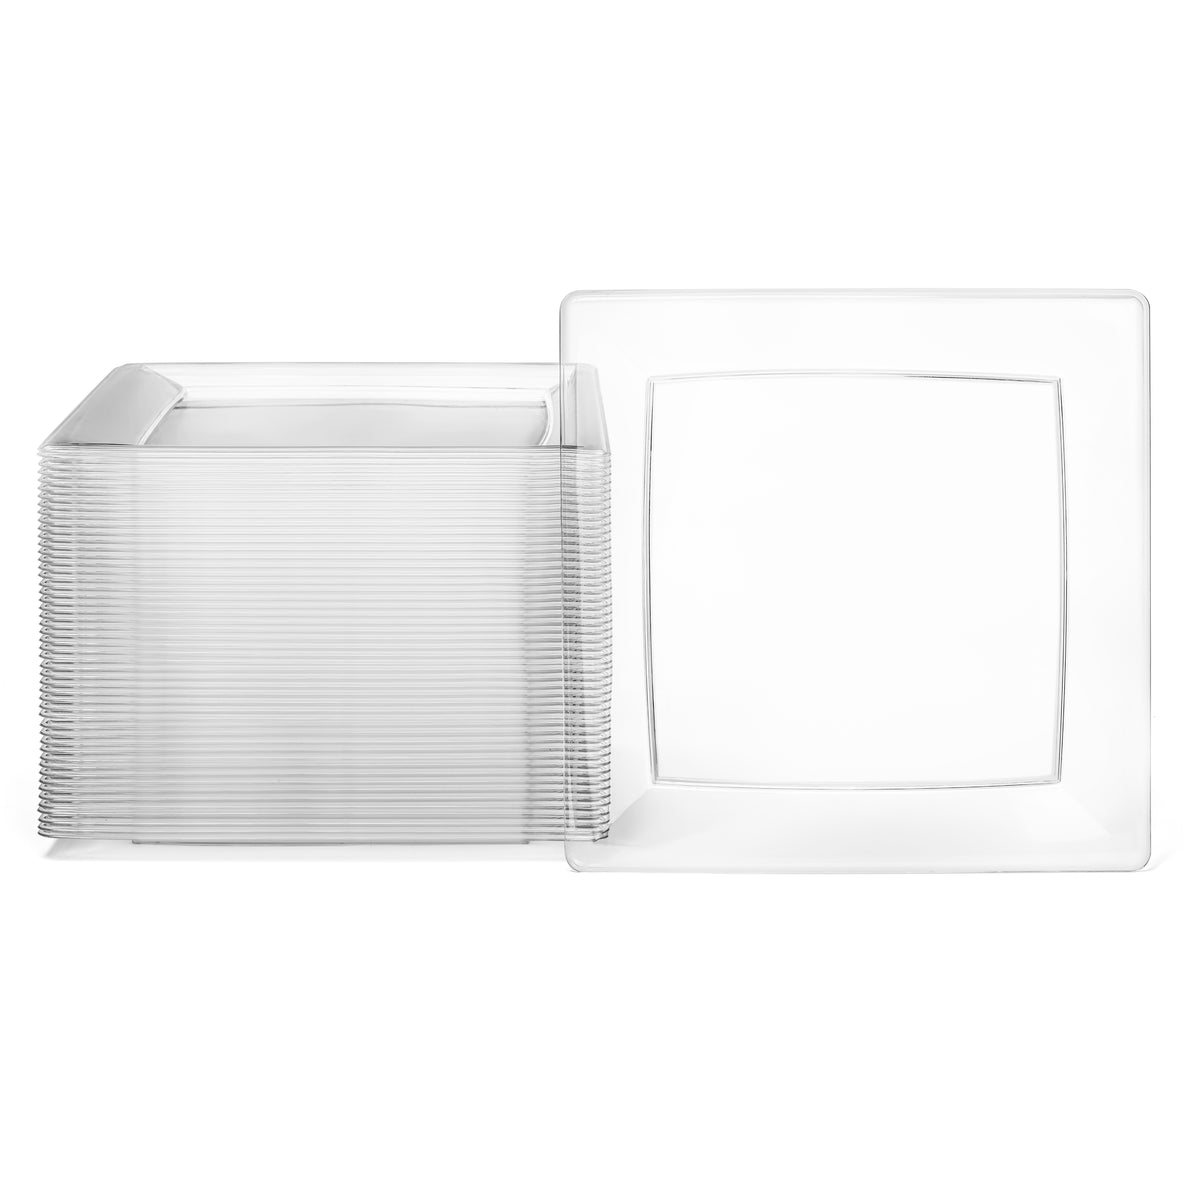 a pack of 50 square clear plate